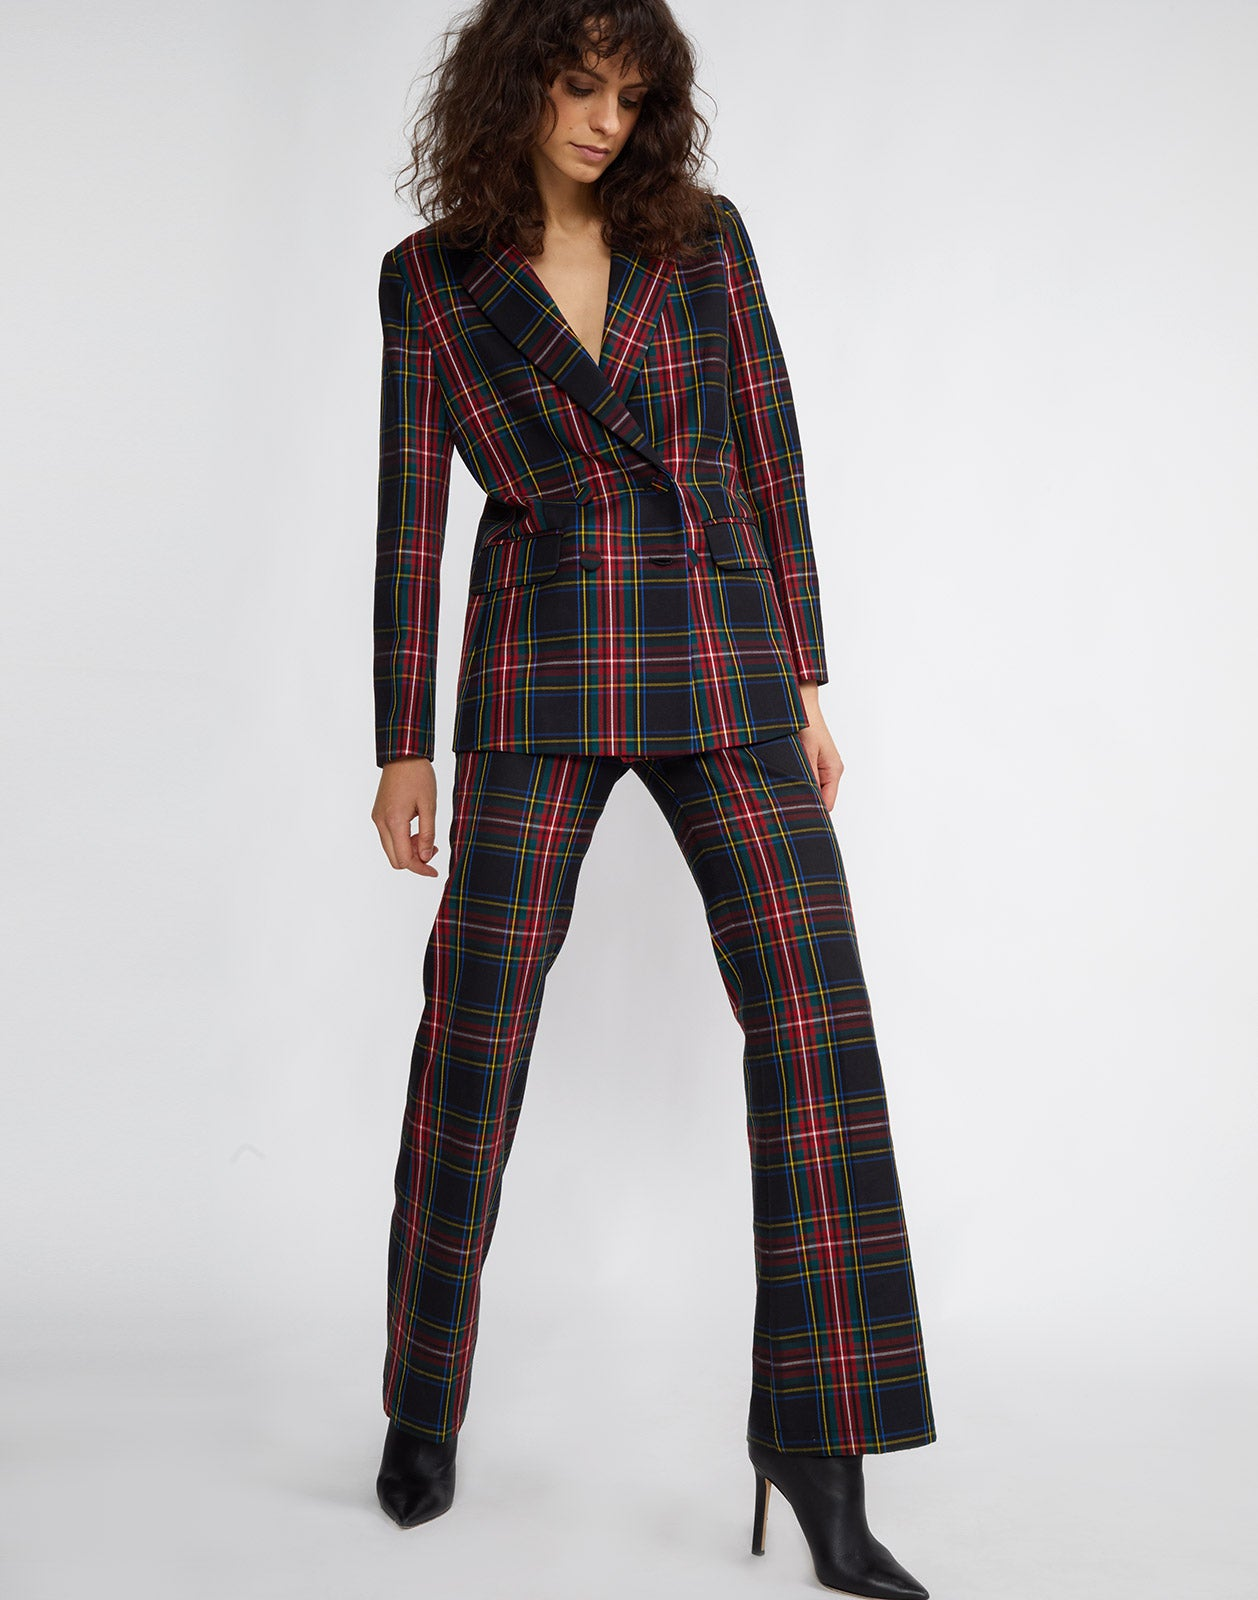 Full front view of the Astor plaid wool pant worn with the Ridley plaid wool blazer.